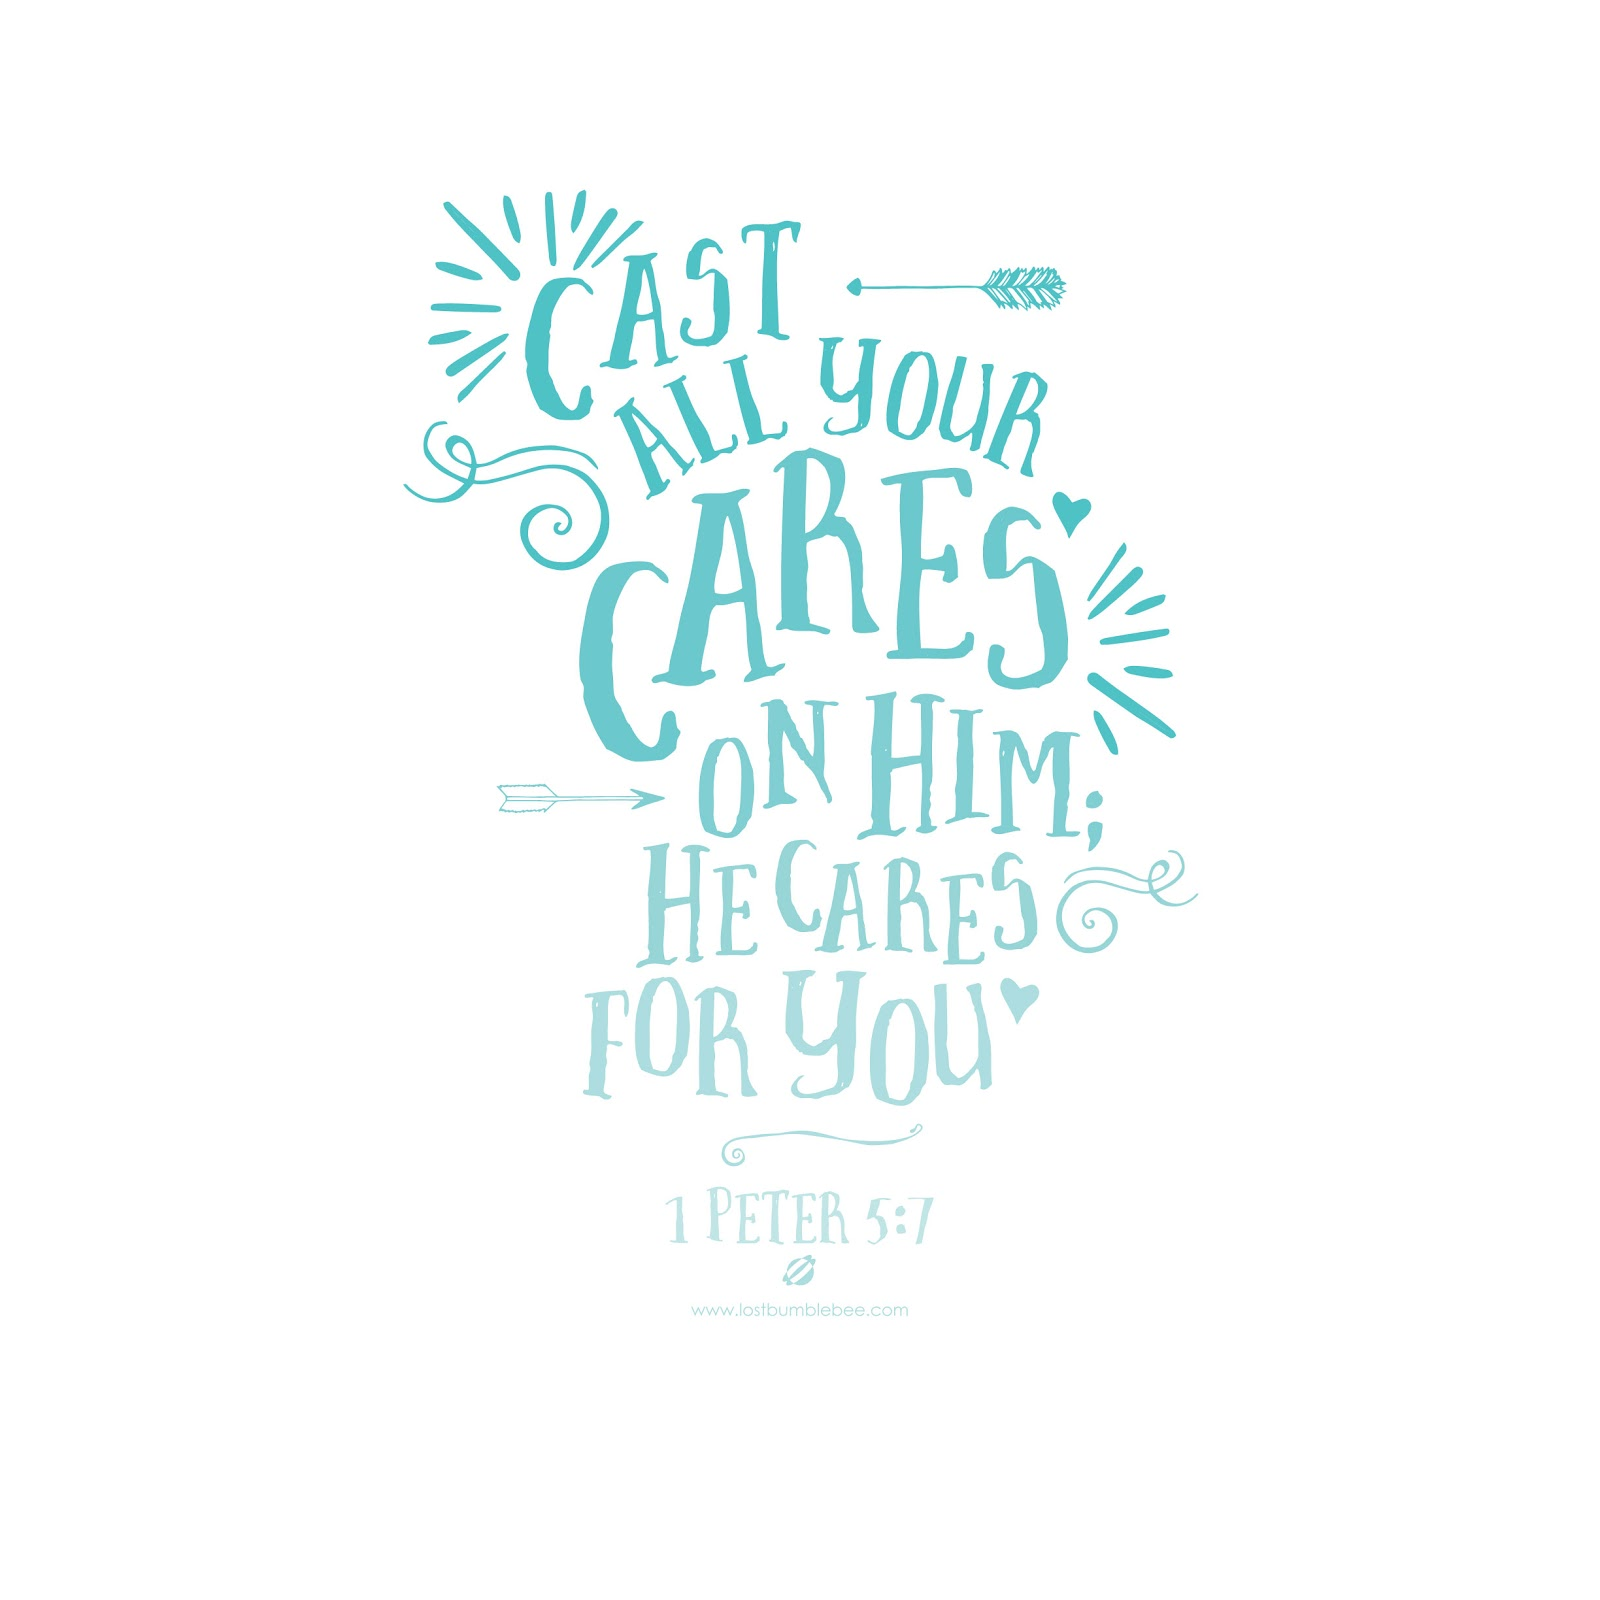 LostBumblebee ©2014 Cast Your Cares 1 Peter 5:7 iOs 7 iPad wallpaper- personal use only